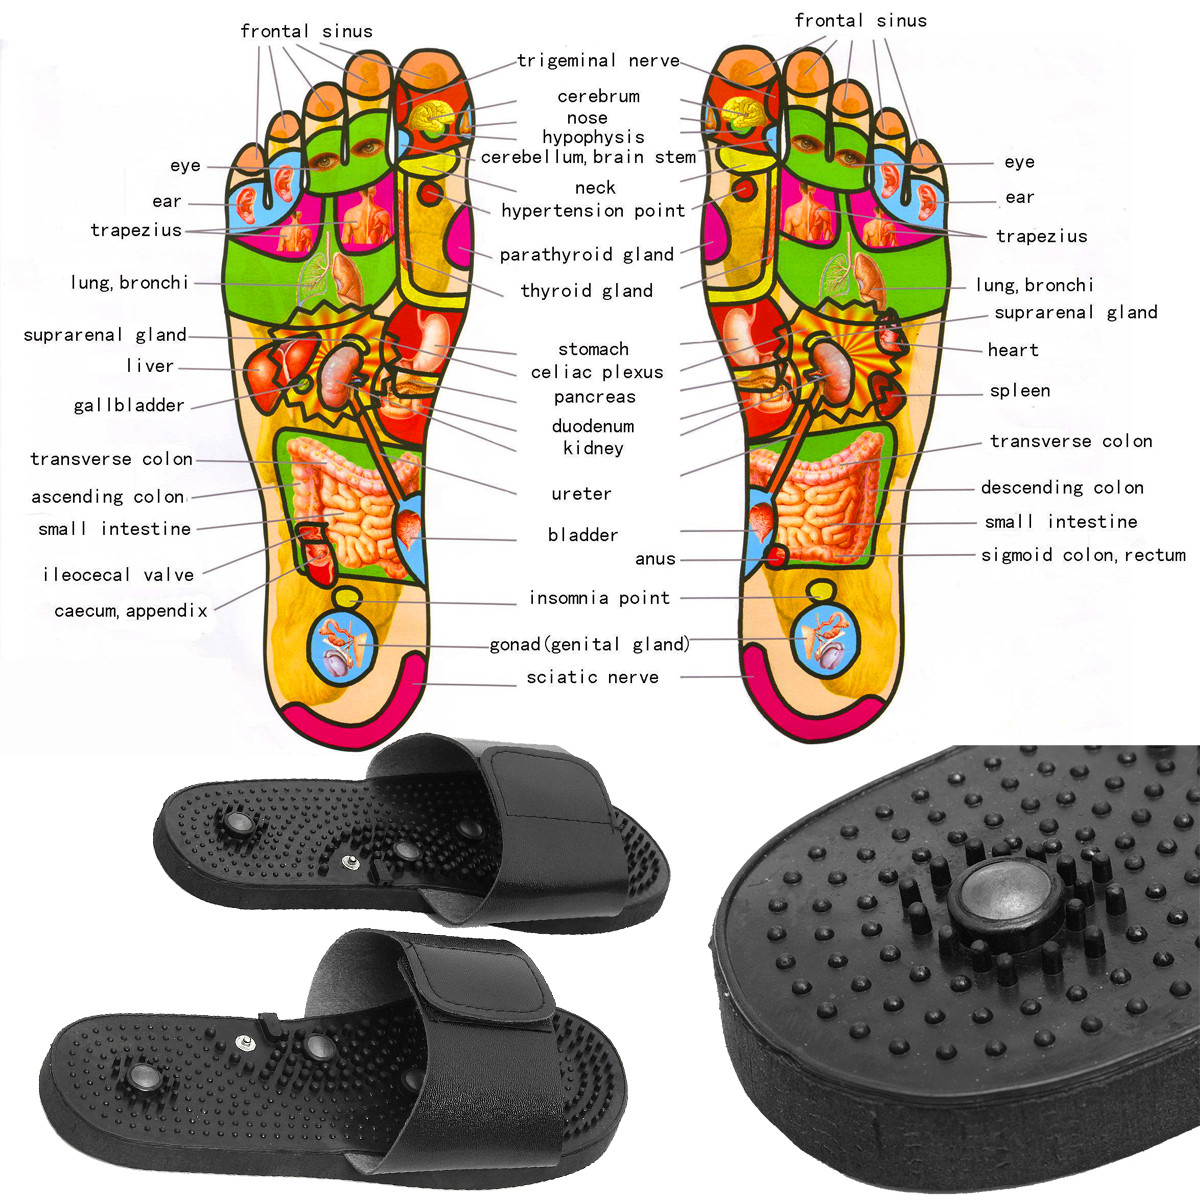 Digital Physiotherapy Massage Tools Acupoint Slipper Electrode Foot Equipment Massager Relaxation